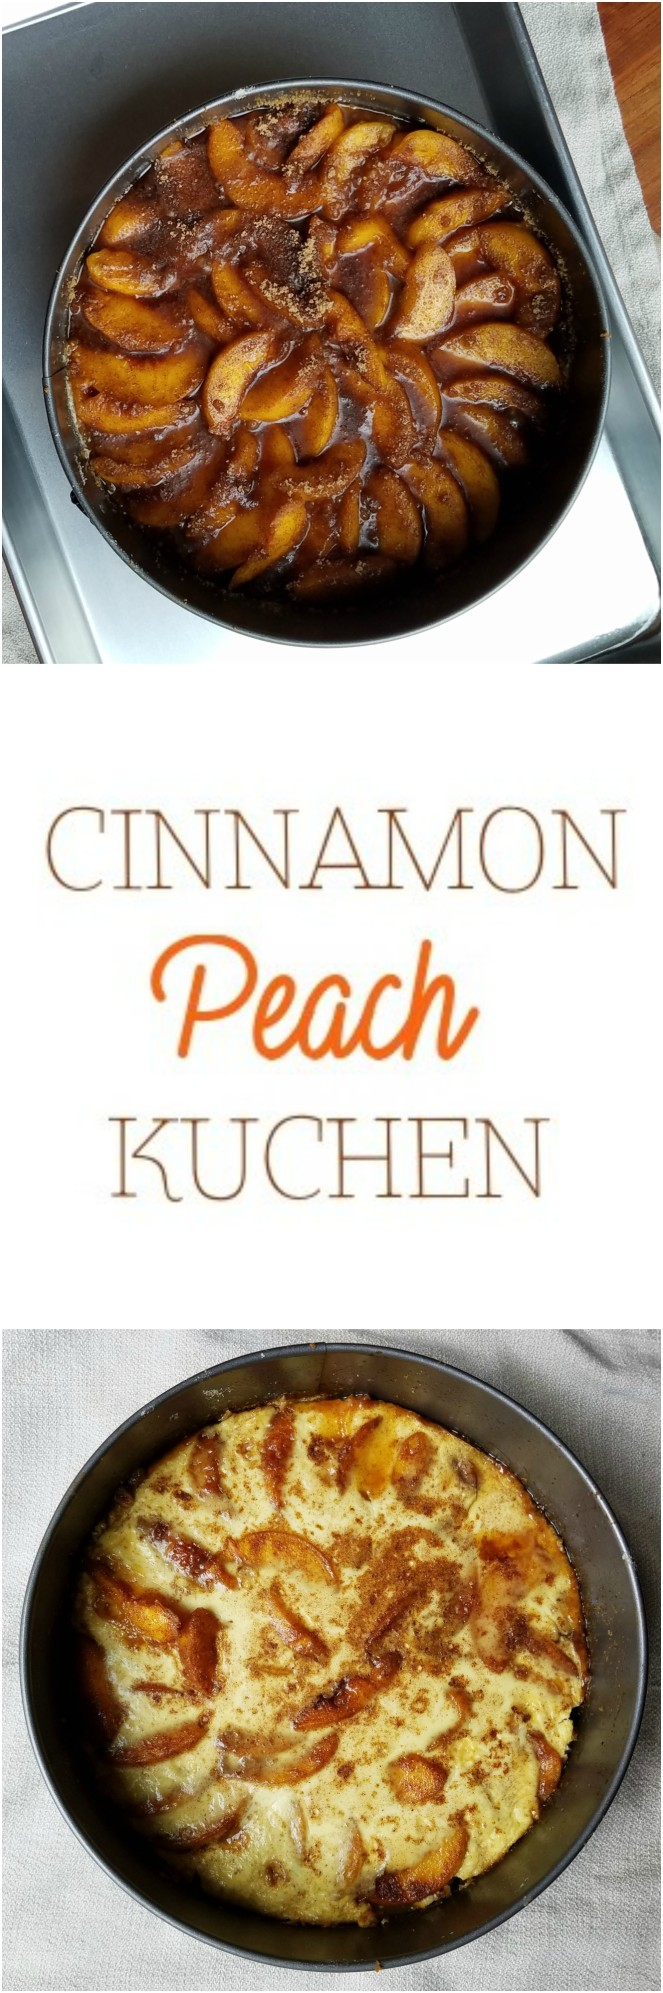 Cinnamon Peach Kuchen by Rumbly in my Tumbly